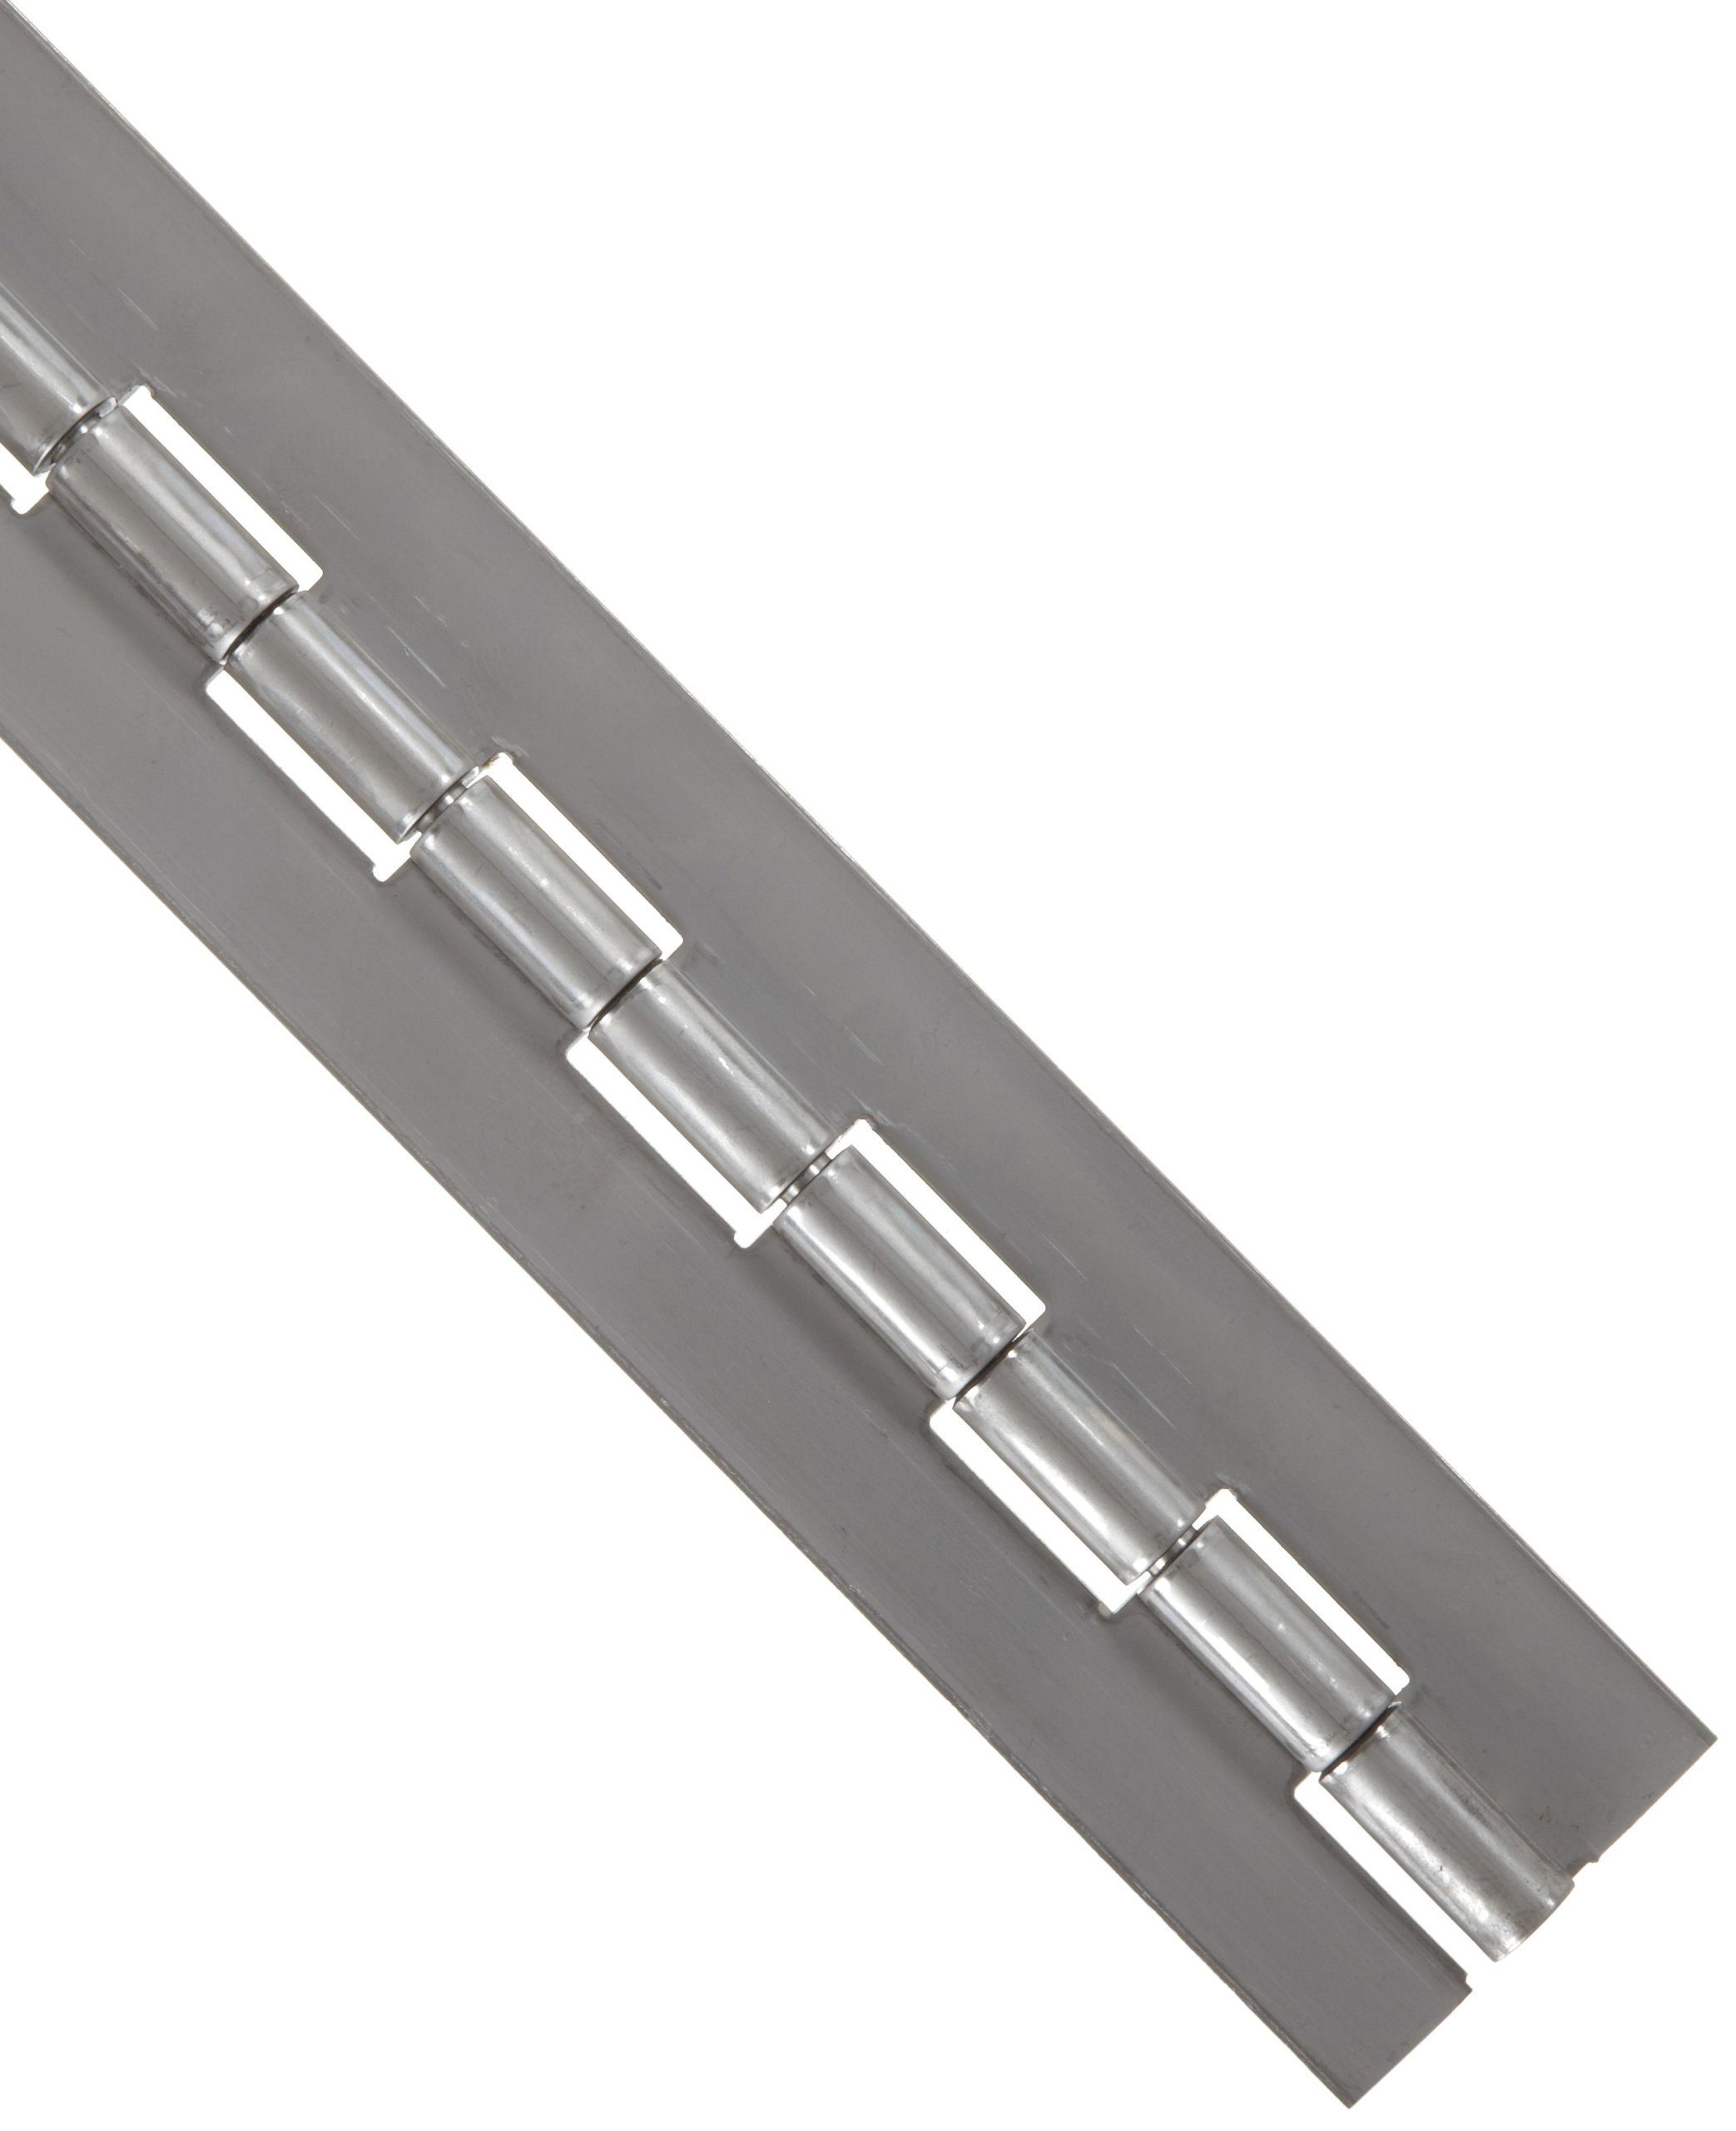 Stainless Steel 316 Continuous Hinge without Holes, Unfinished, 0.09'' Leaf Thickness, 2'' Open Width, 1/4'' Pin Diameter, 1'' Knuckle Length, 2' Long (Pack of 1)